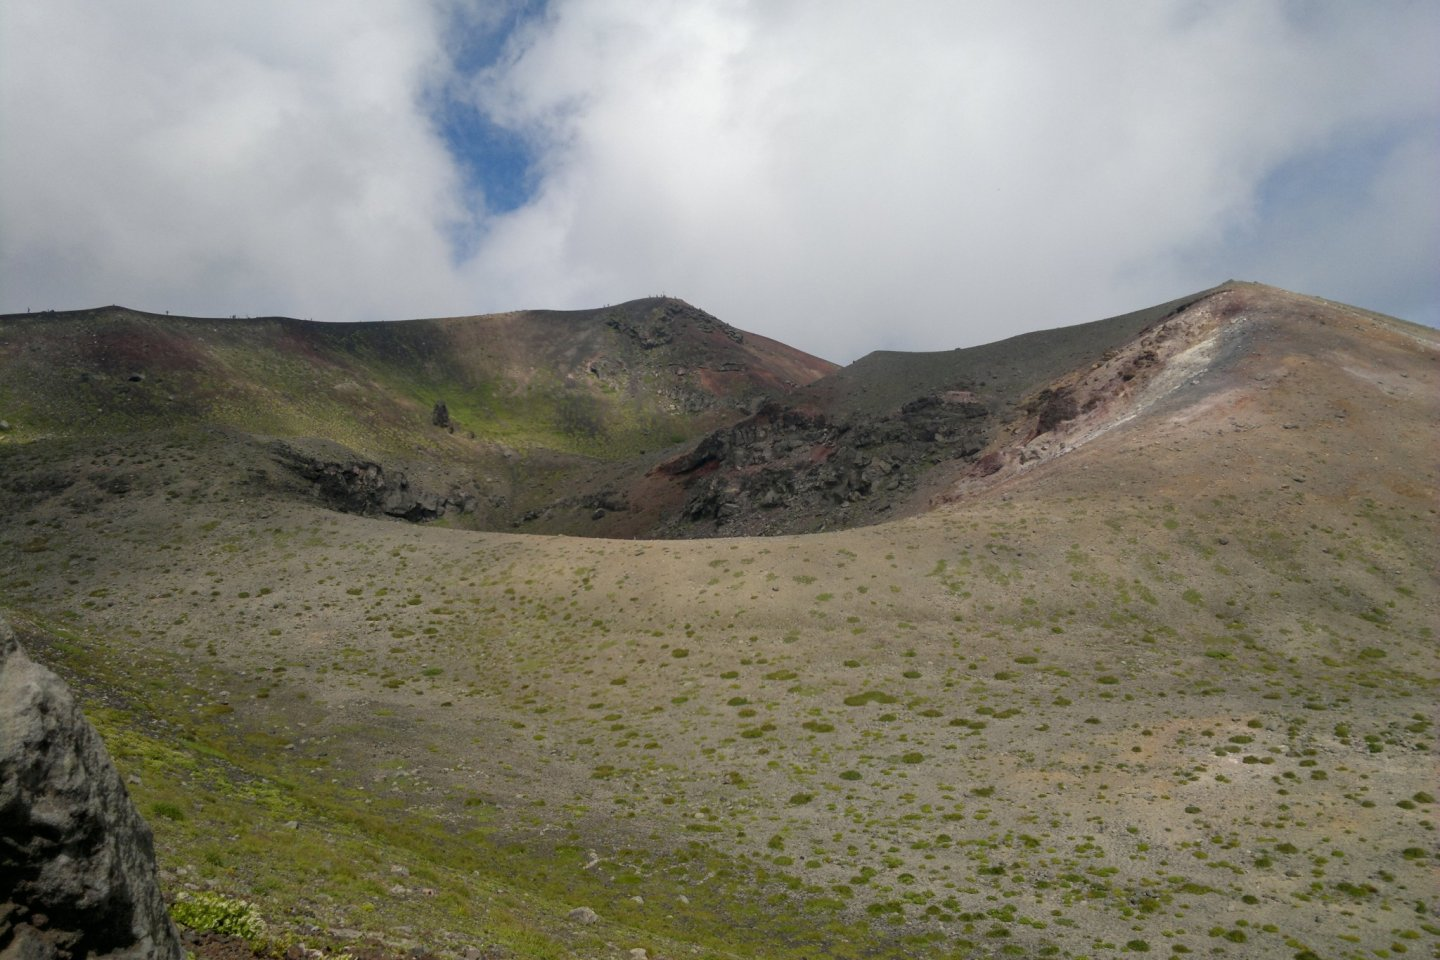 The top crater